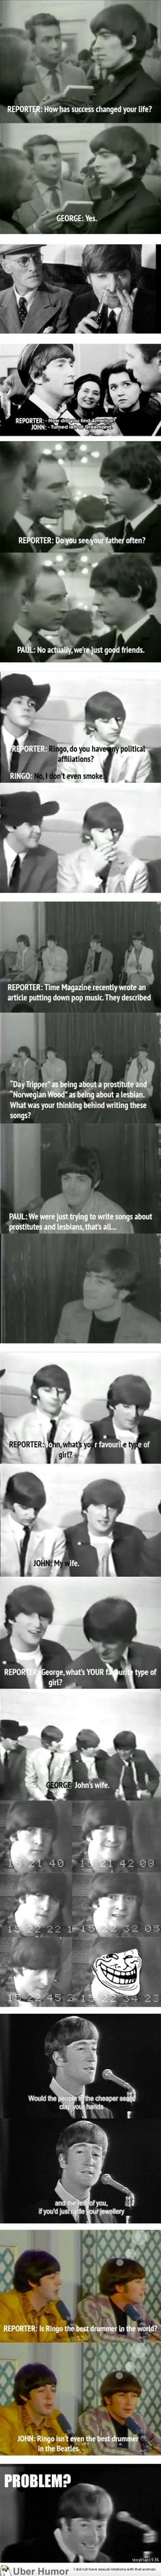 The Beatles were just the best.